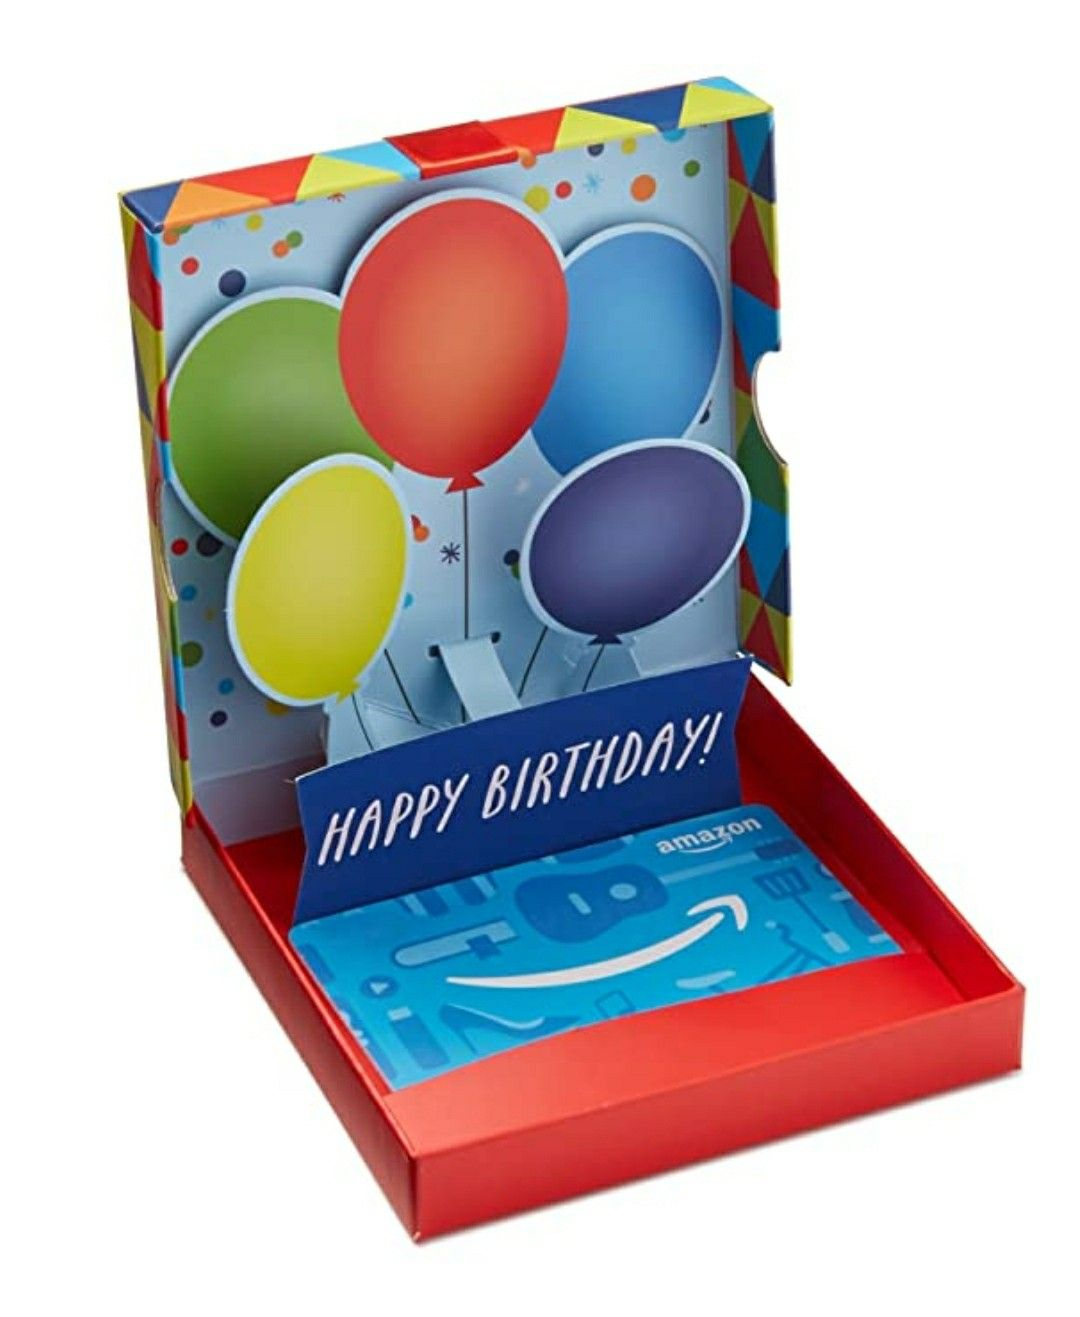 Amazon Com Gift Card In A Birthday Pop Up Box By Amazon Birthday Gift Cards Best Gift Cards Unique Birthday Gifts